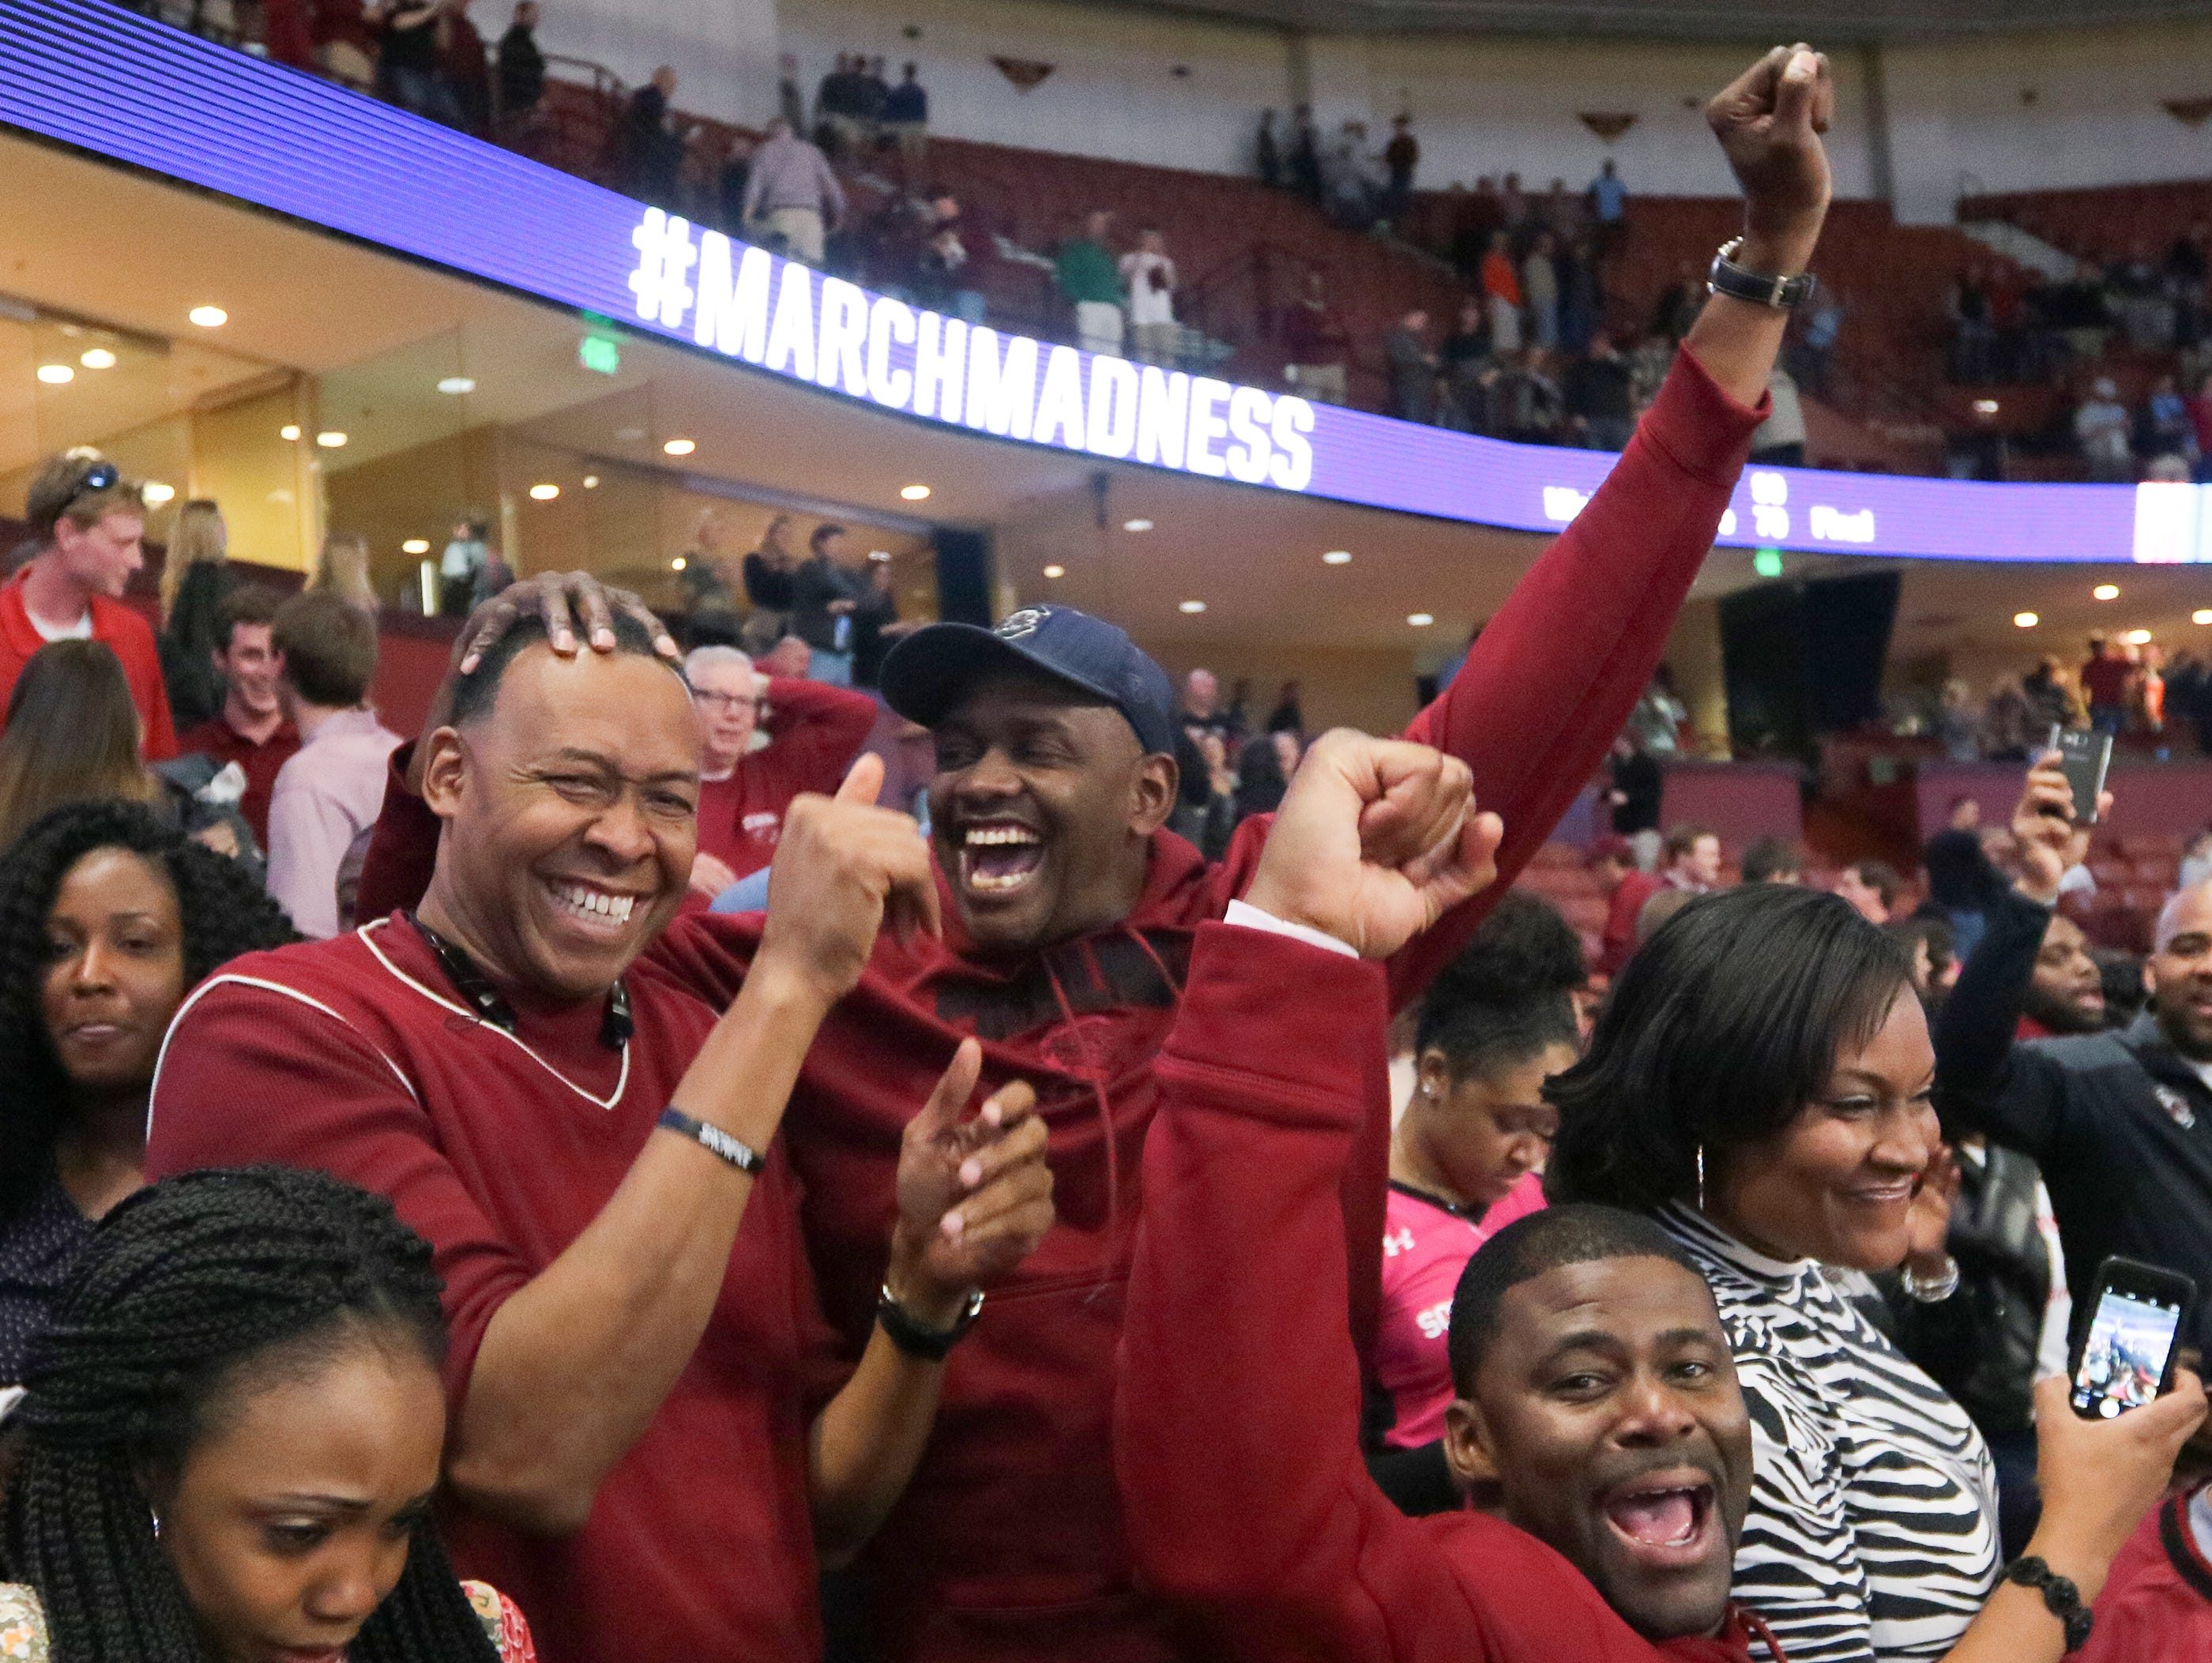 Perry Dozier, left, Terry Dozier, and B.J. McKie, former South Carolina players, cheer after an 88-81 win over Duke during the 2nd round of the NCAA Tournament at Bon Secours Wellness Arena in downtown Greenville on Sunday, March 19, 2017.